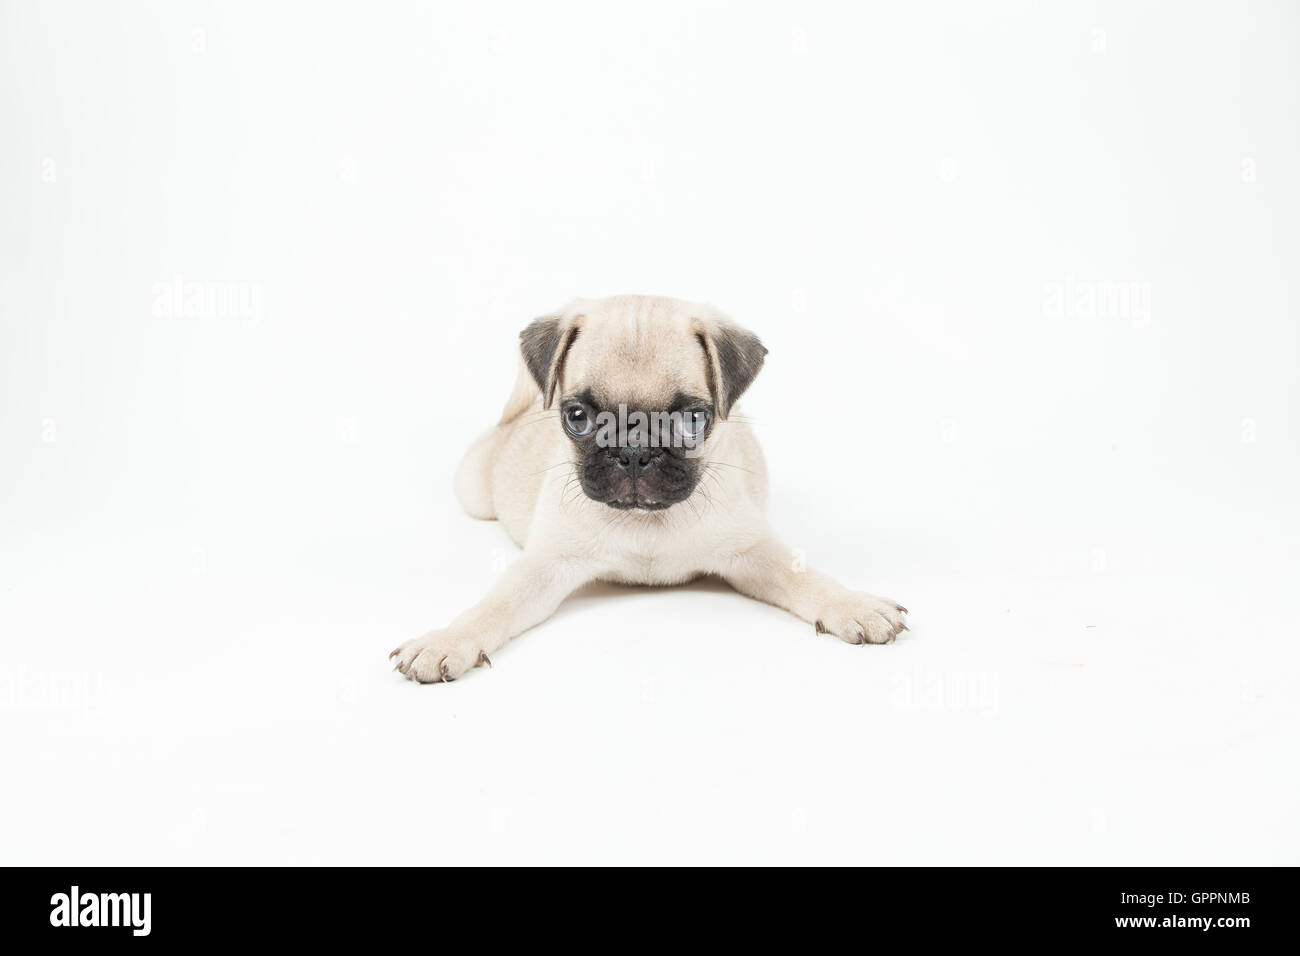 A pug puppy lying down in a white background - Stock Image